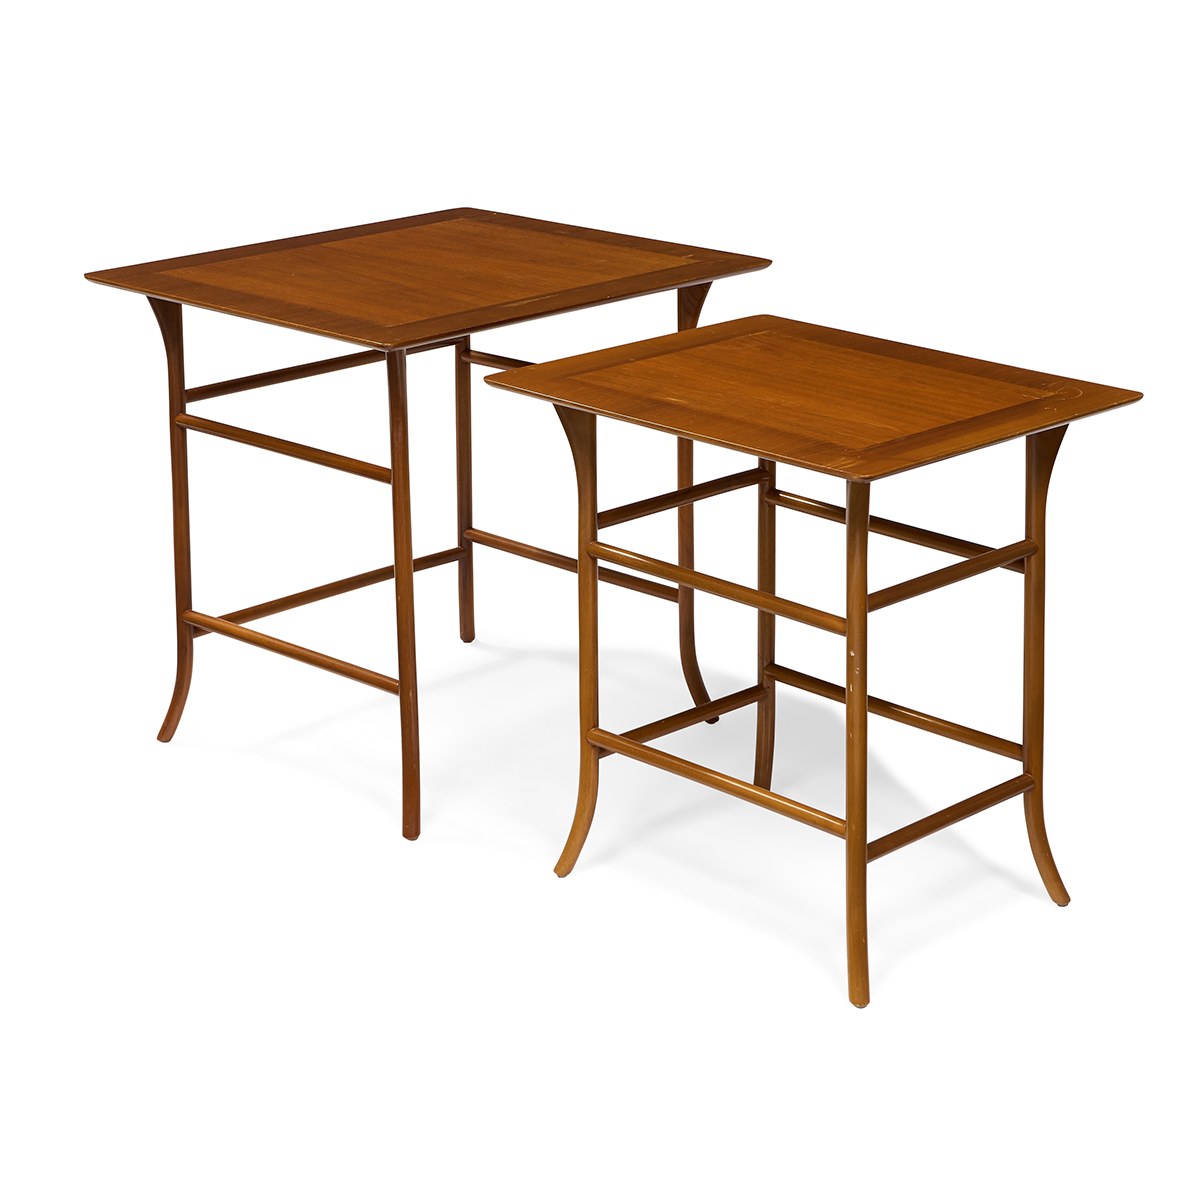 "T.H. Robsjohn-Gibbings (1905-1976) for Widdicomb nesting tables, two 26""w x 23""d x 24""h, 22""w x 18 1/4""d x 23""h"